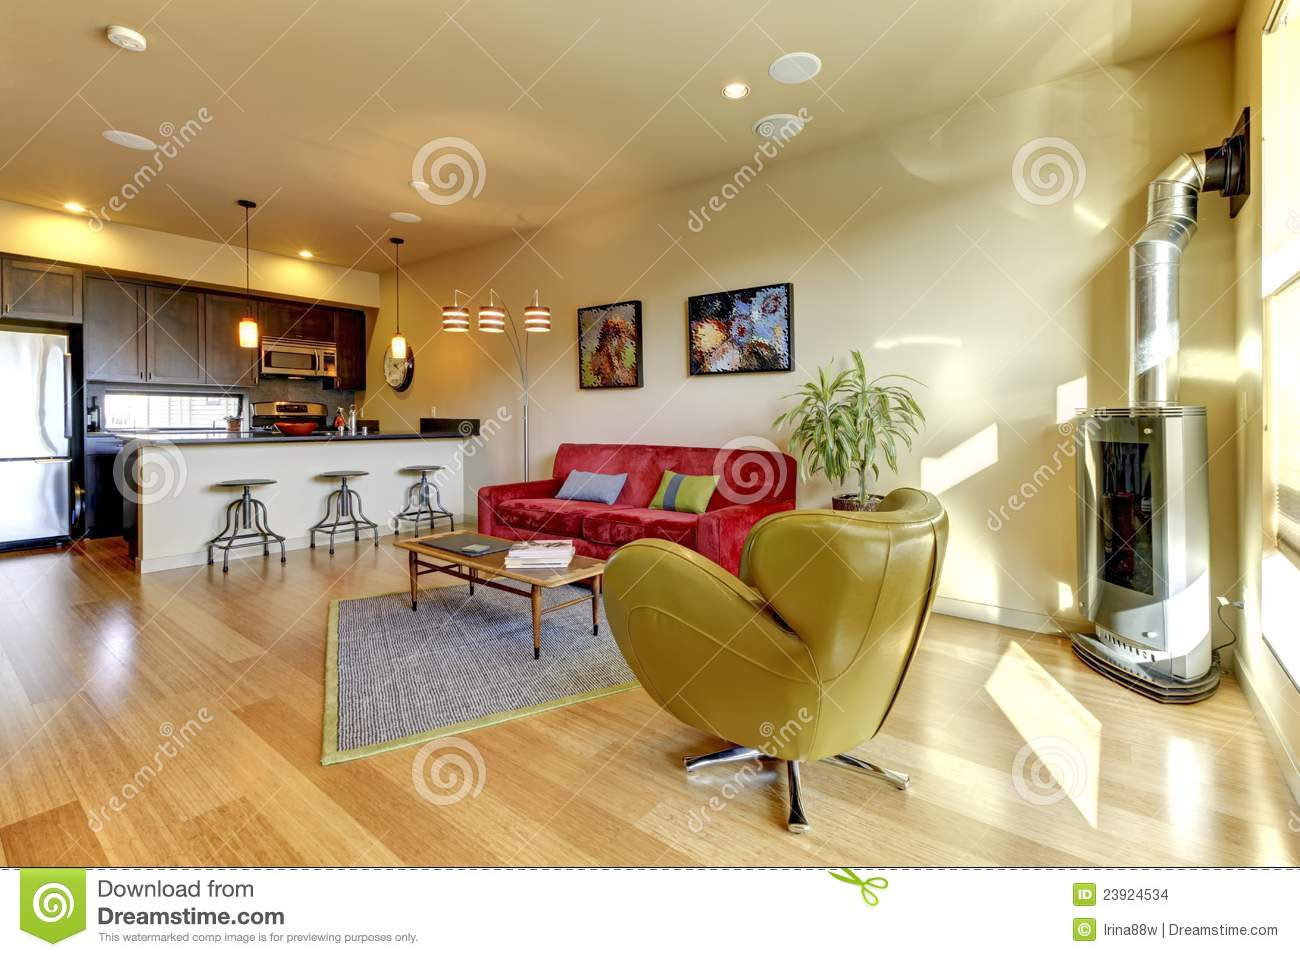 sofa in the kitchen factory uk yellow living room ith red and stock images